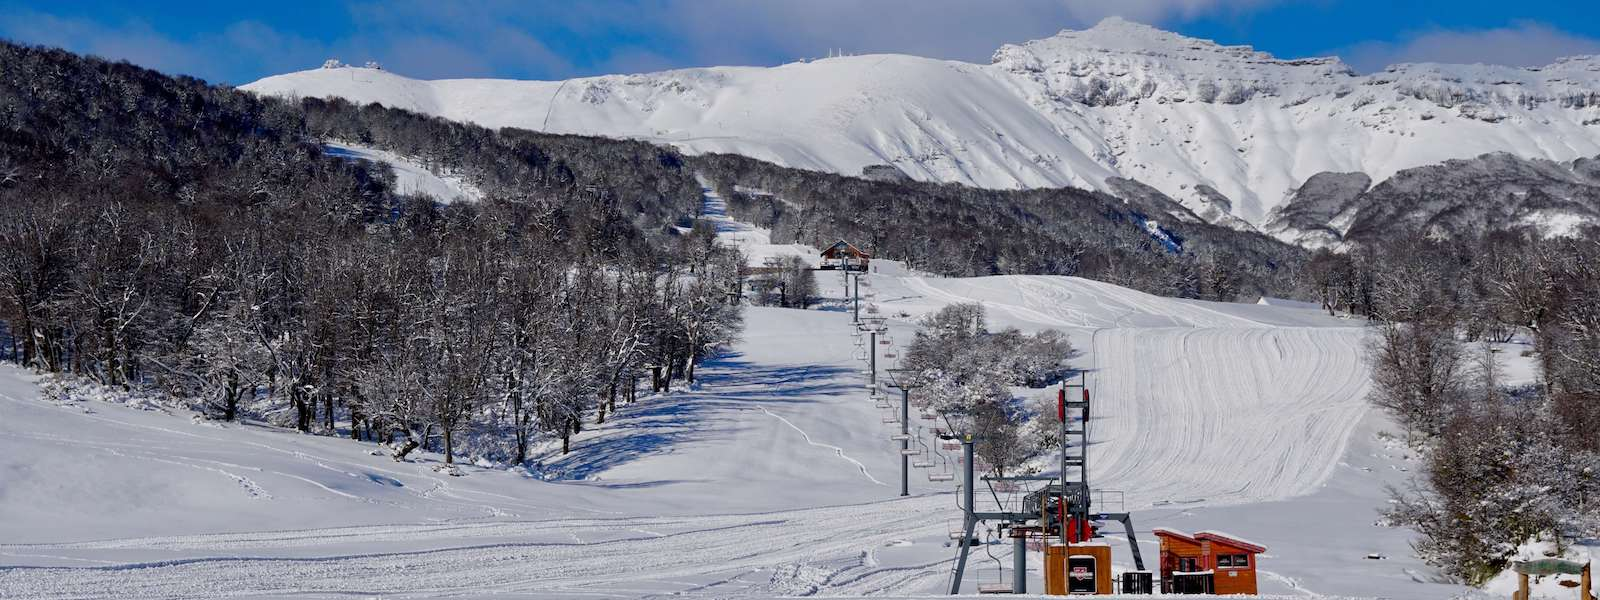 chapelco ski resort in argentina